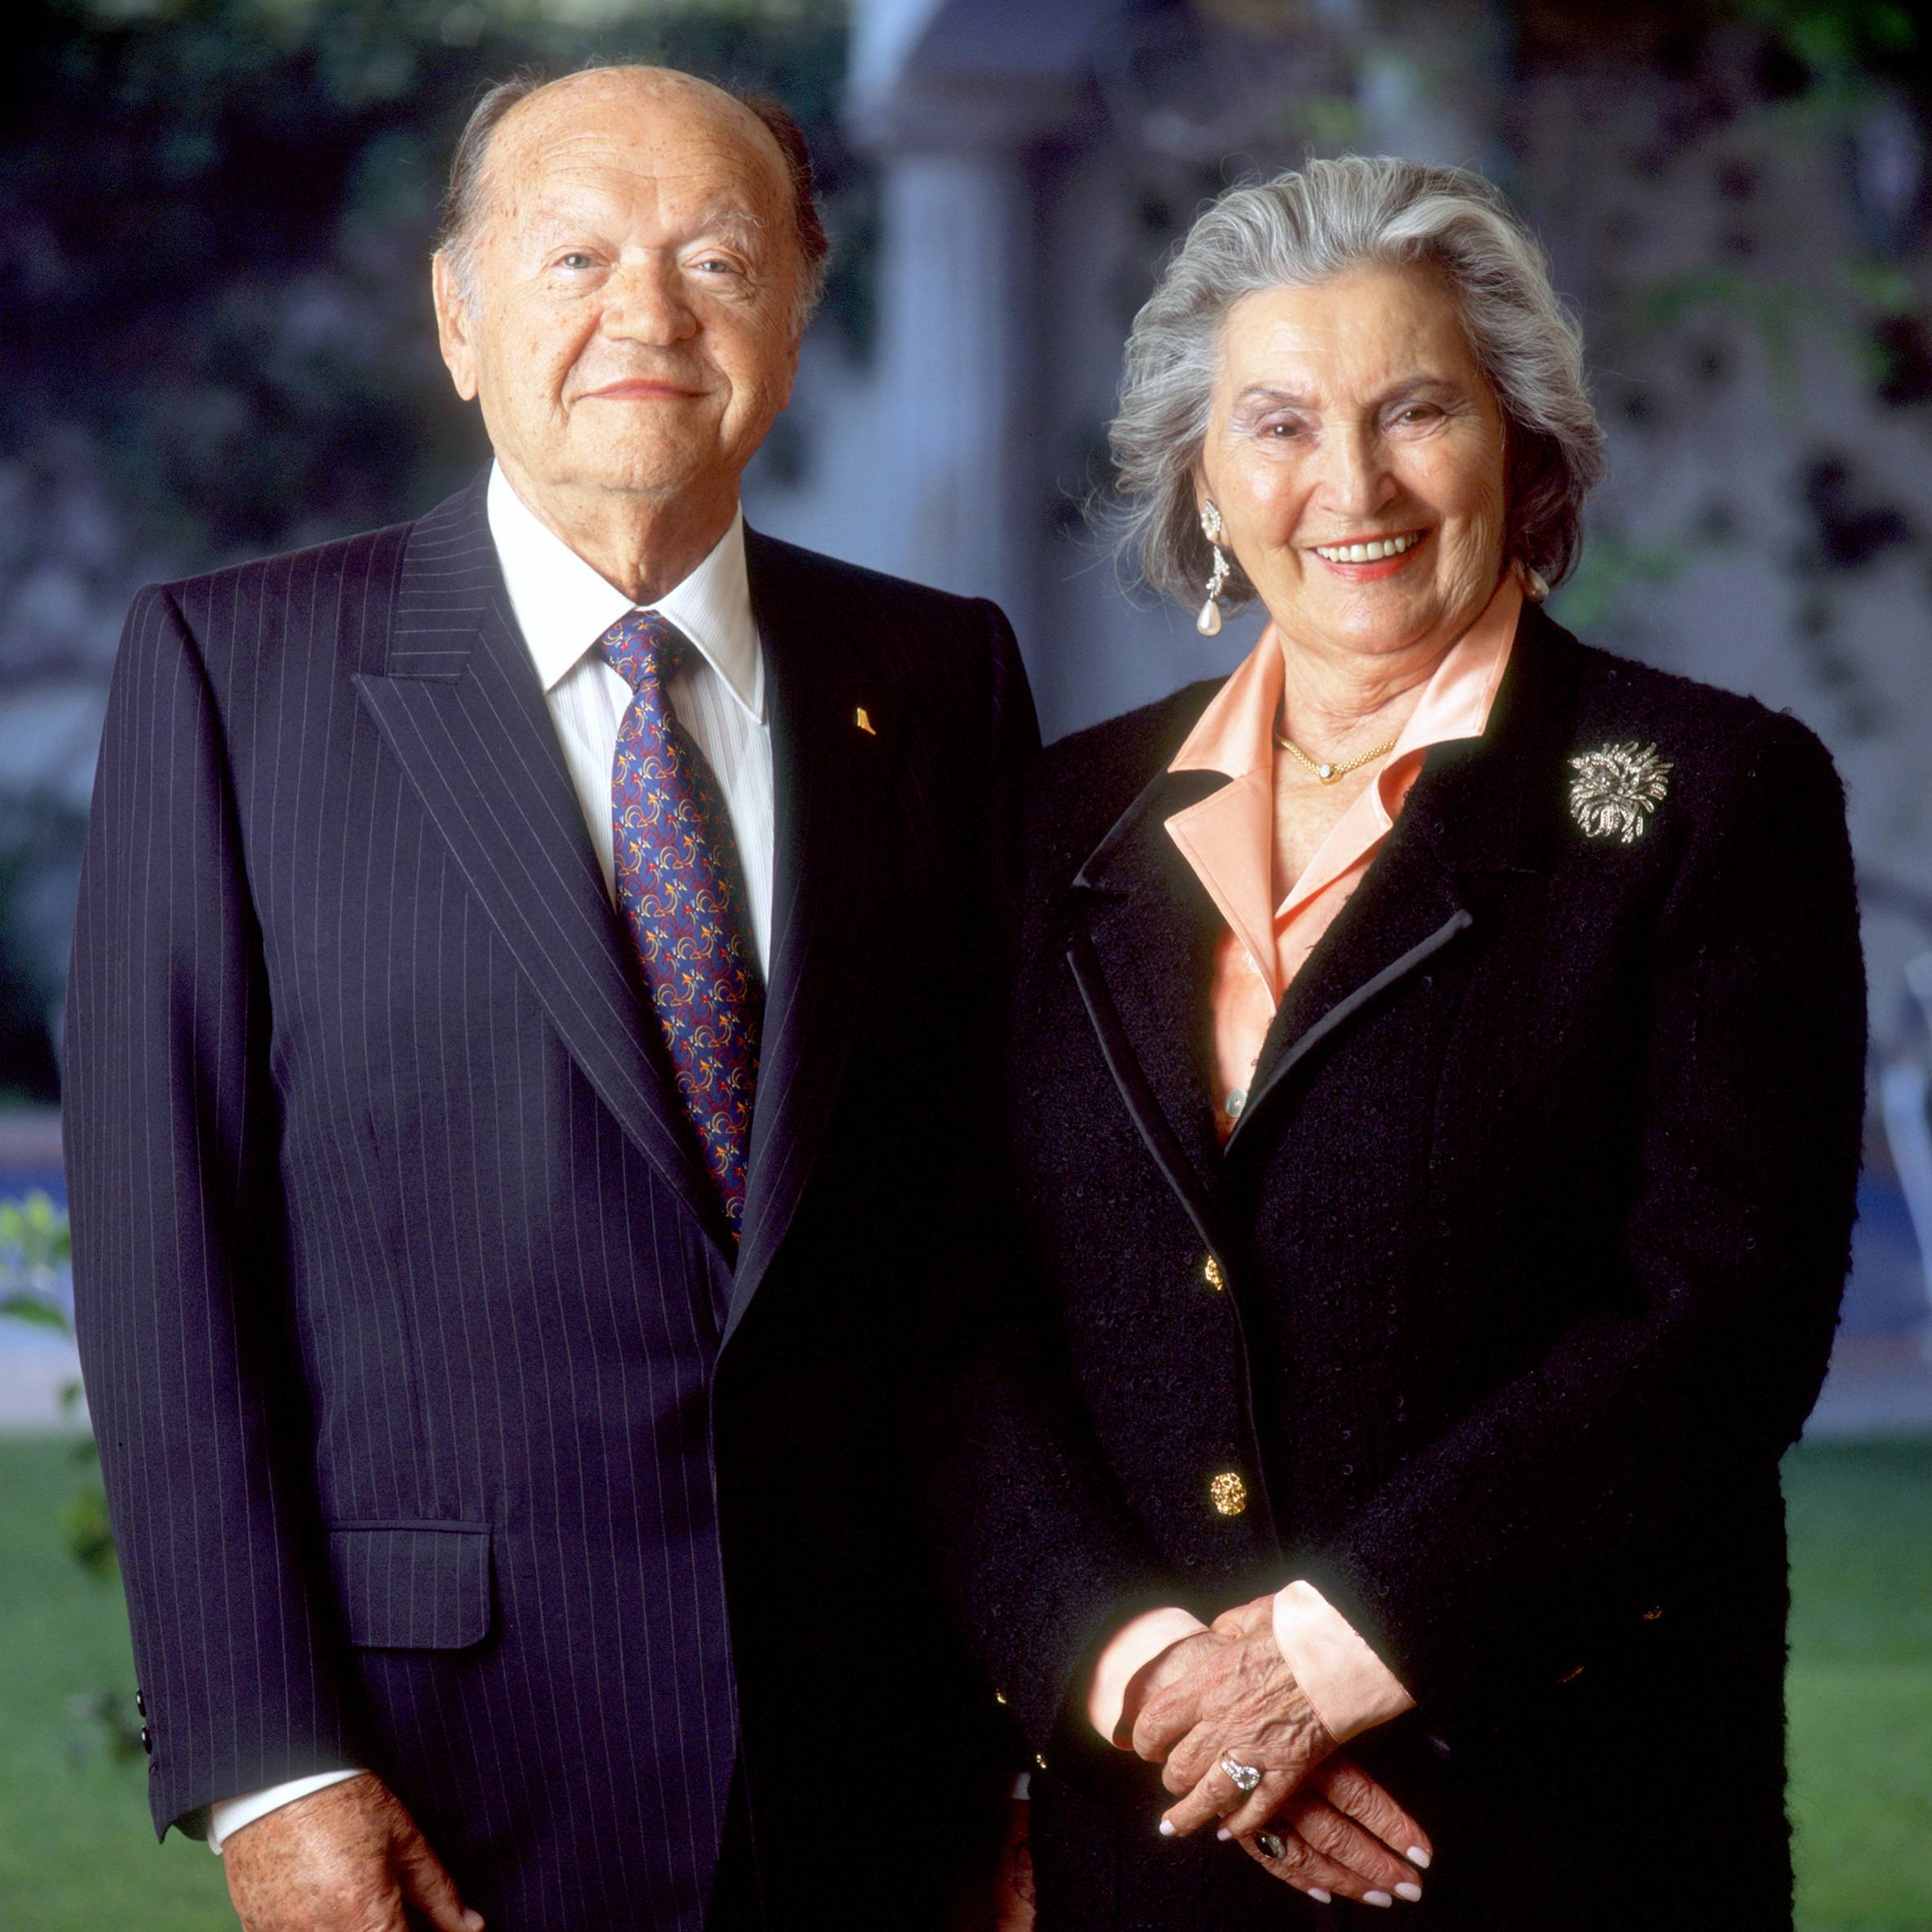 Mr. and Mrs. Leslie Gonda smiling in formal portrait